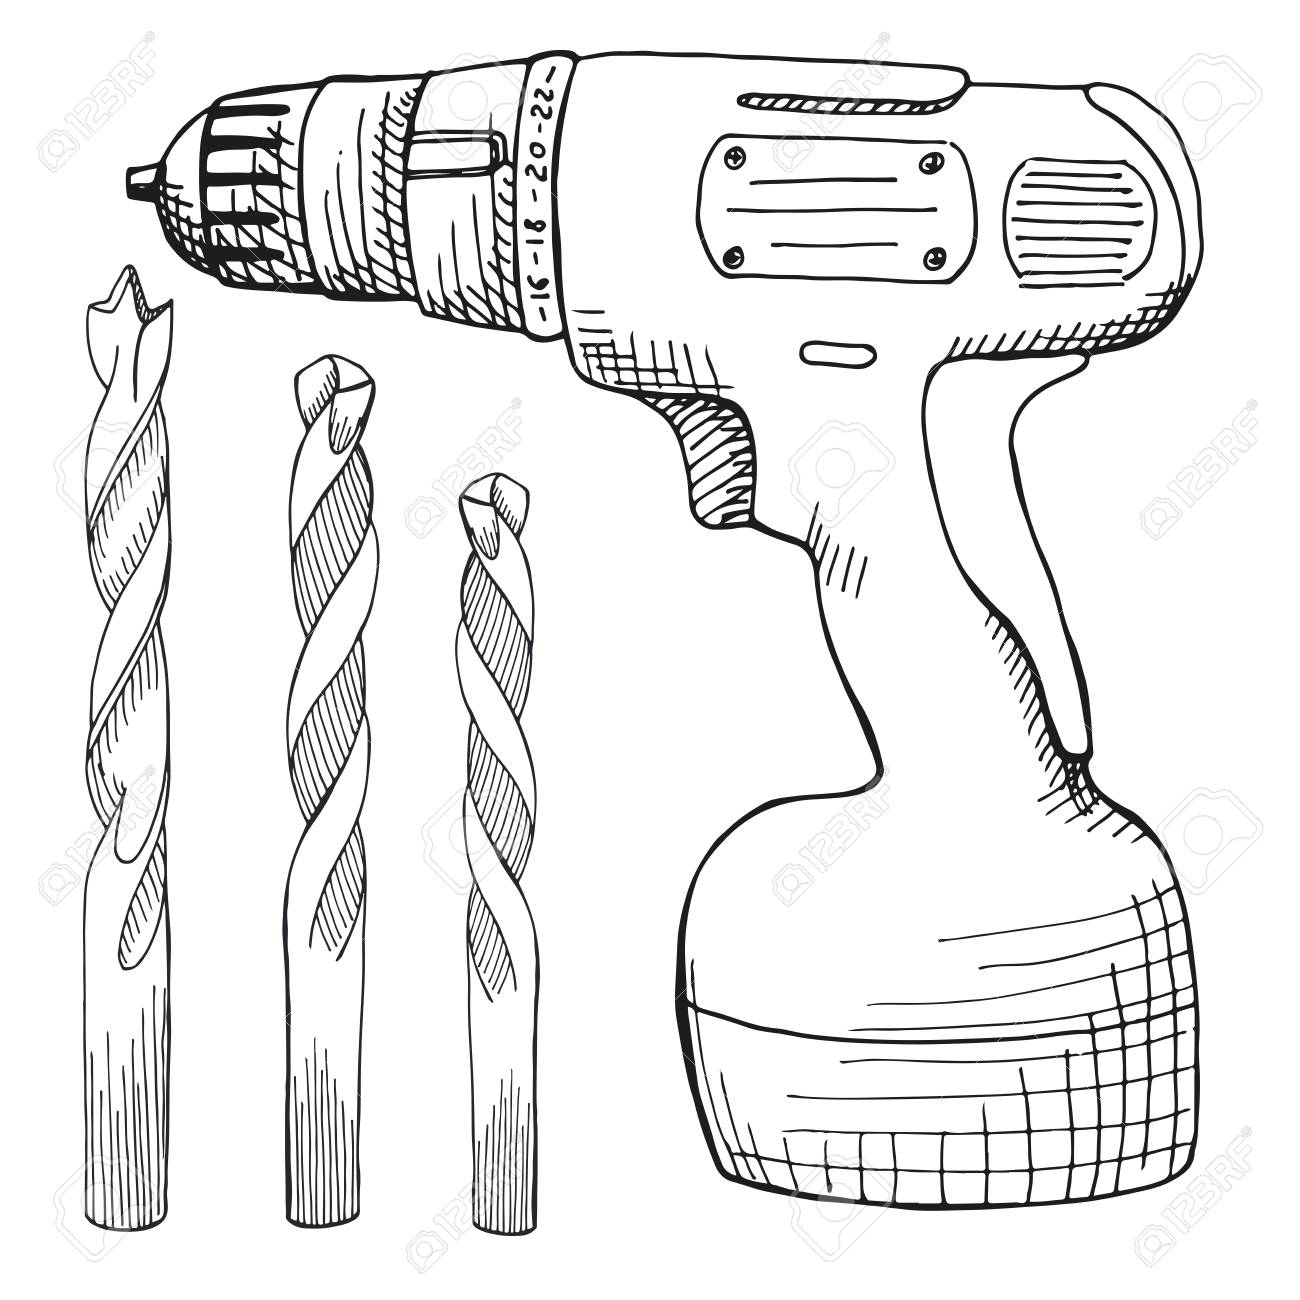 1300x1300 Set Of Screw Gun, And Wood Drill. Tools Illustration In Vector